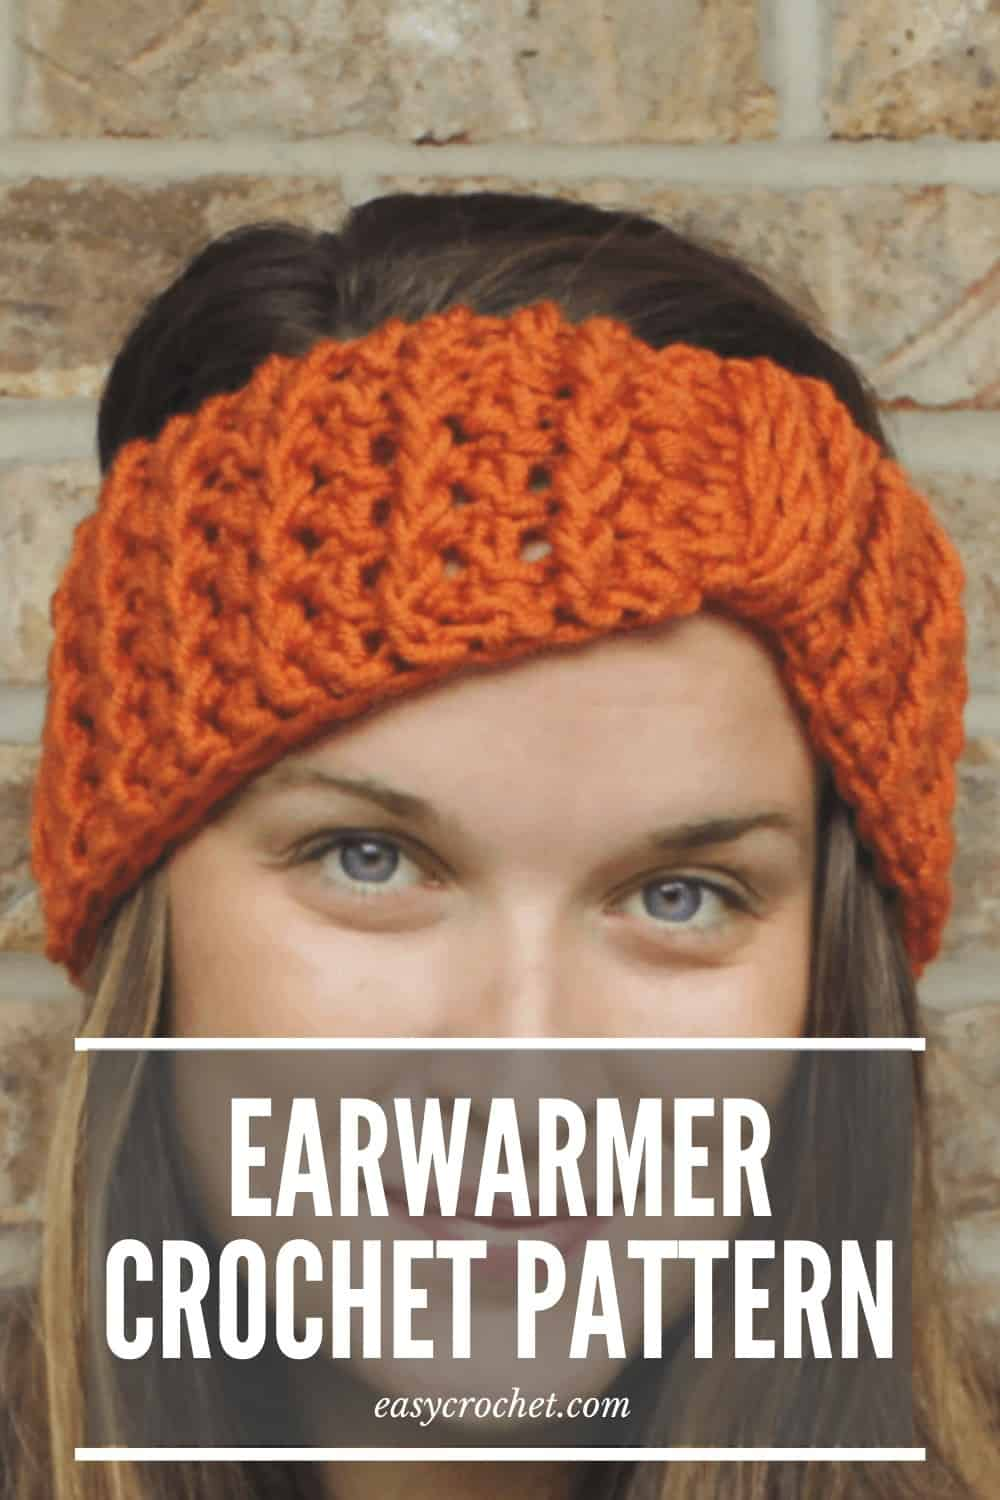 Ear Warmer Crochet Pattern Free Pattern from Easy Crochet via @easycrochetcom